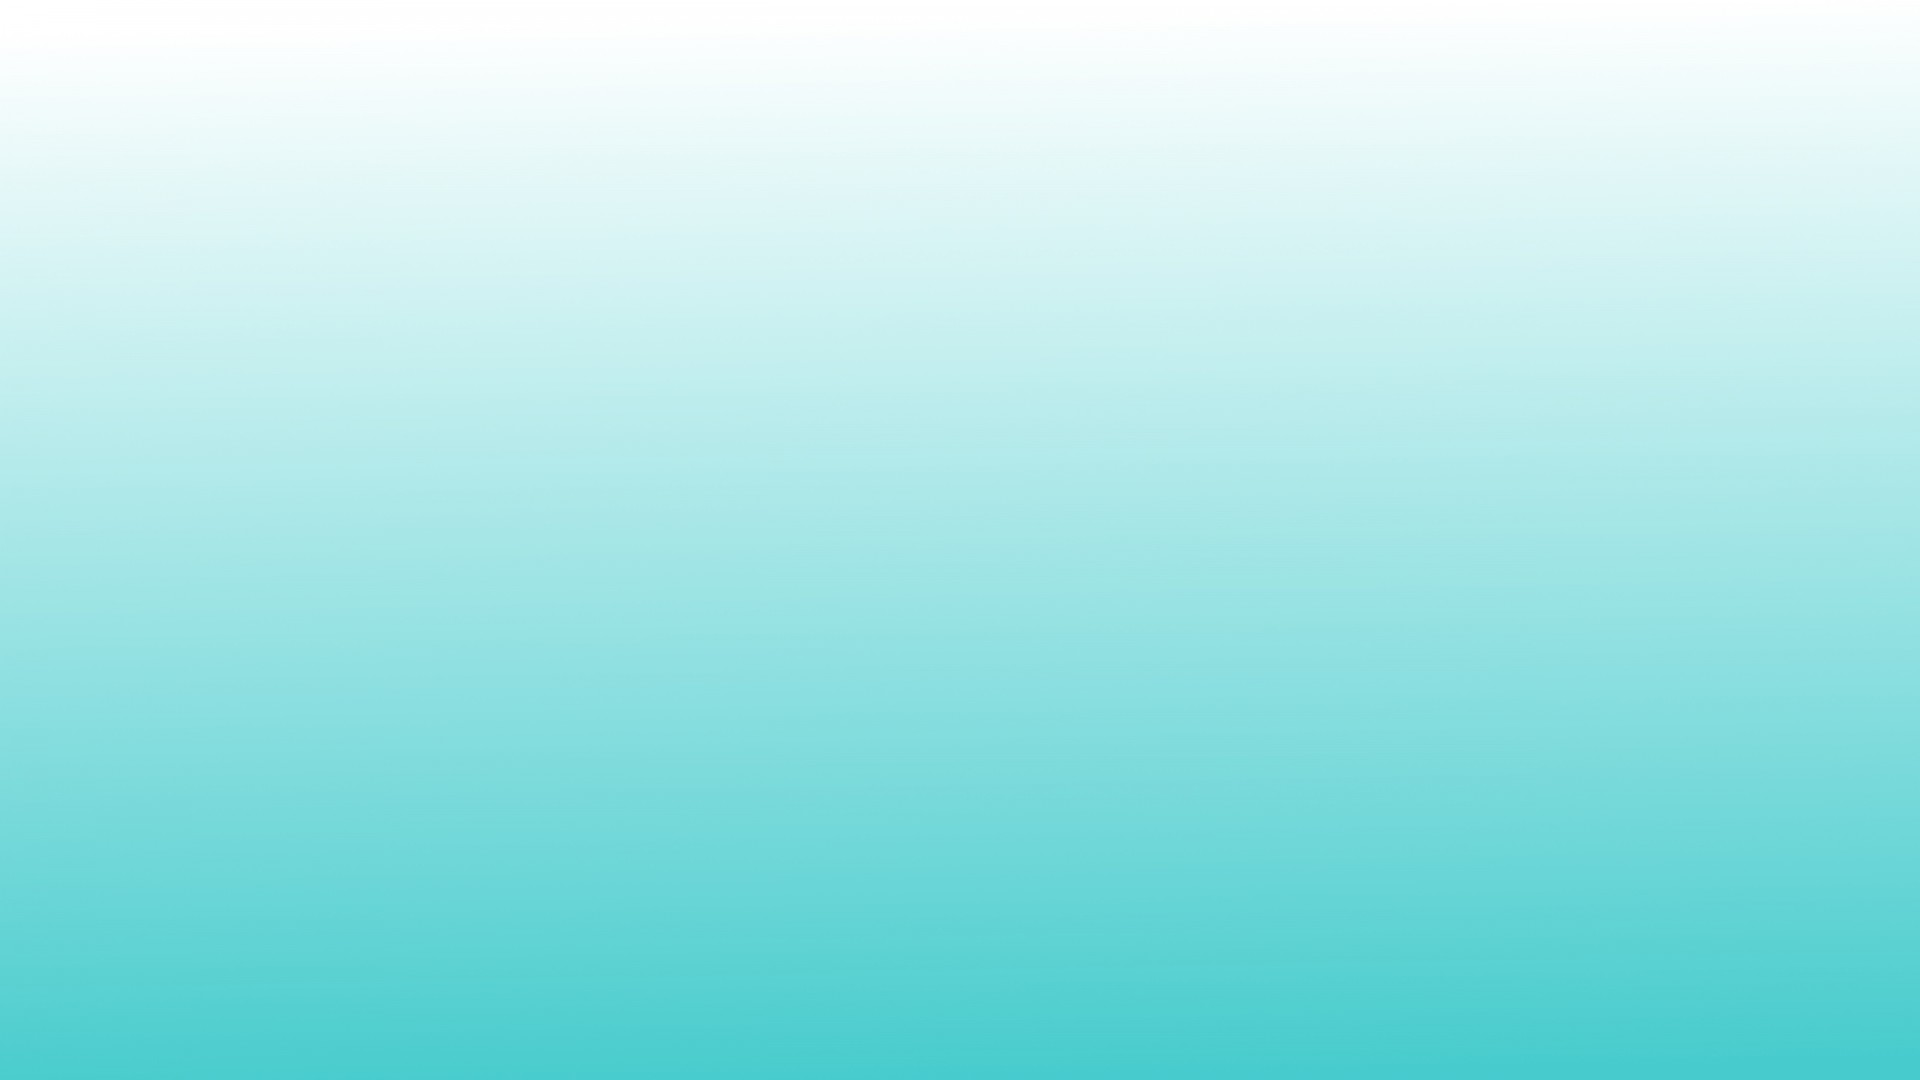 turquoise-top-gradient-background.jpg